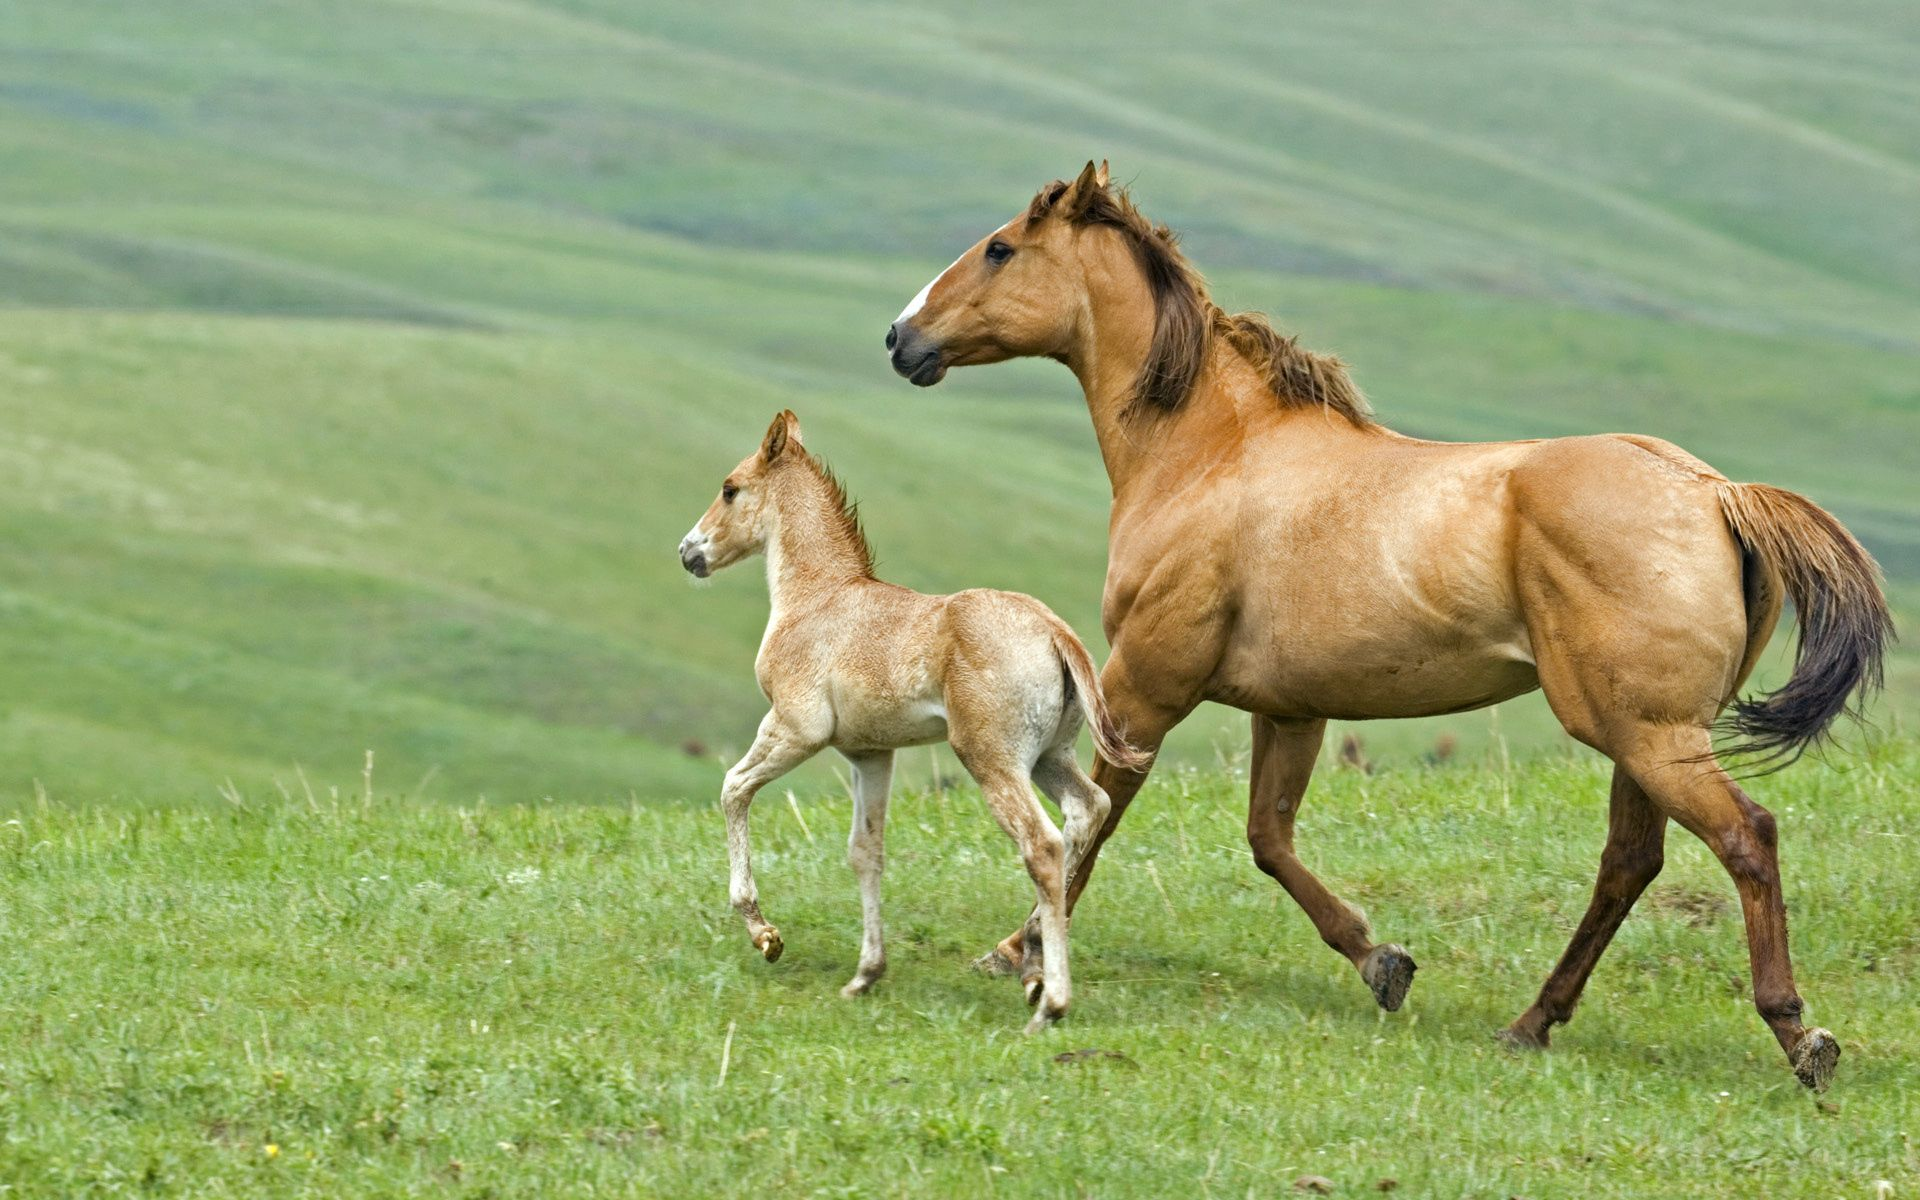 107547 download wallpaper Animals, Horse, Stallion, Grass, Couple, Pair, Stroll, Family screensavers and pictures for free